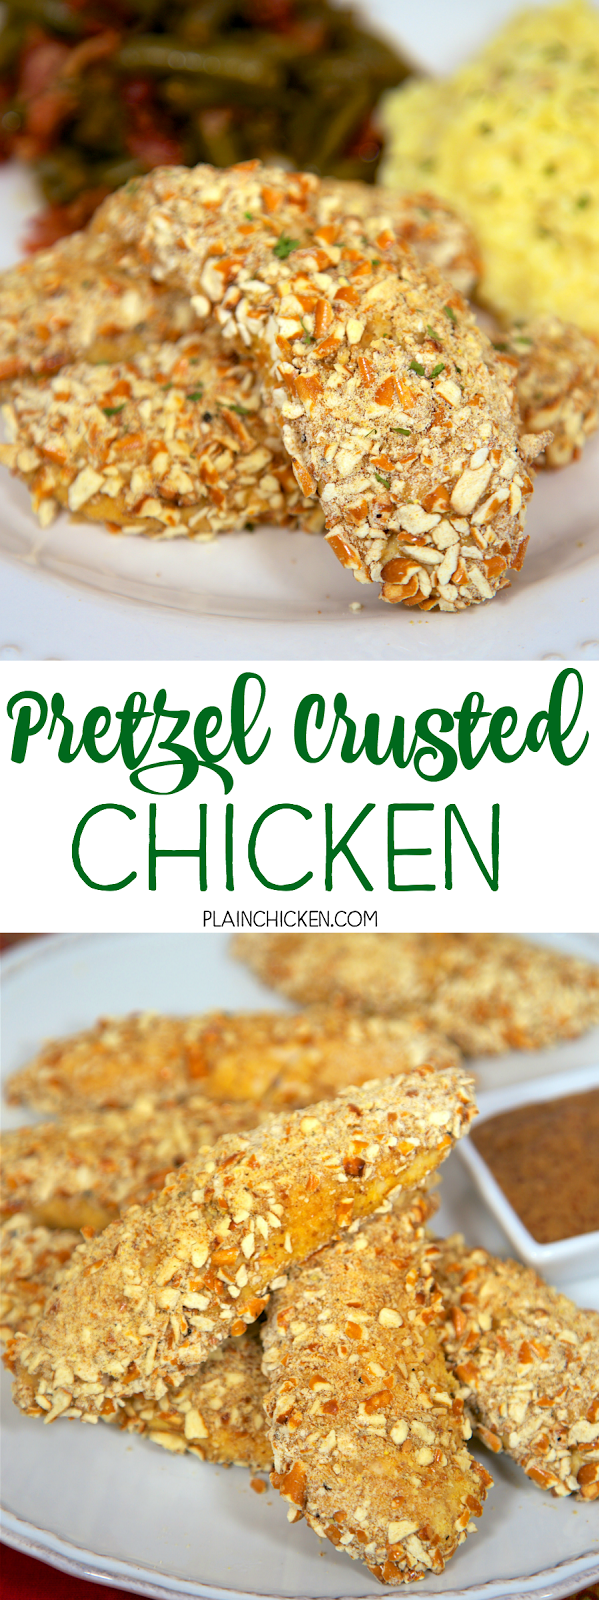 Pretzel Crusted Chicken Tenders - chicken coated in cornmeal, dijon mustard, garlic and pretzels then baked. Ready in under 20 minutes! My husband raves about these! He asks me to make them at least once a week! SO good! Can coat and freeze for later!!